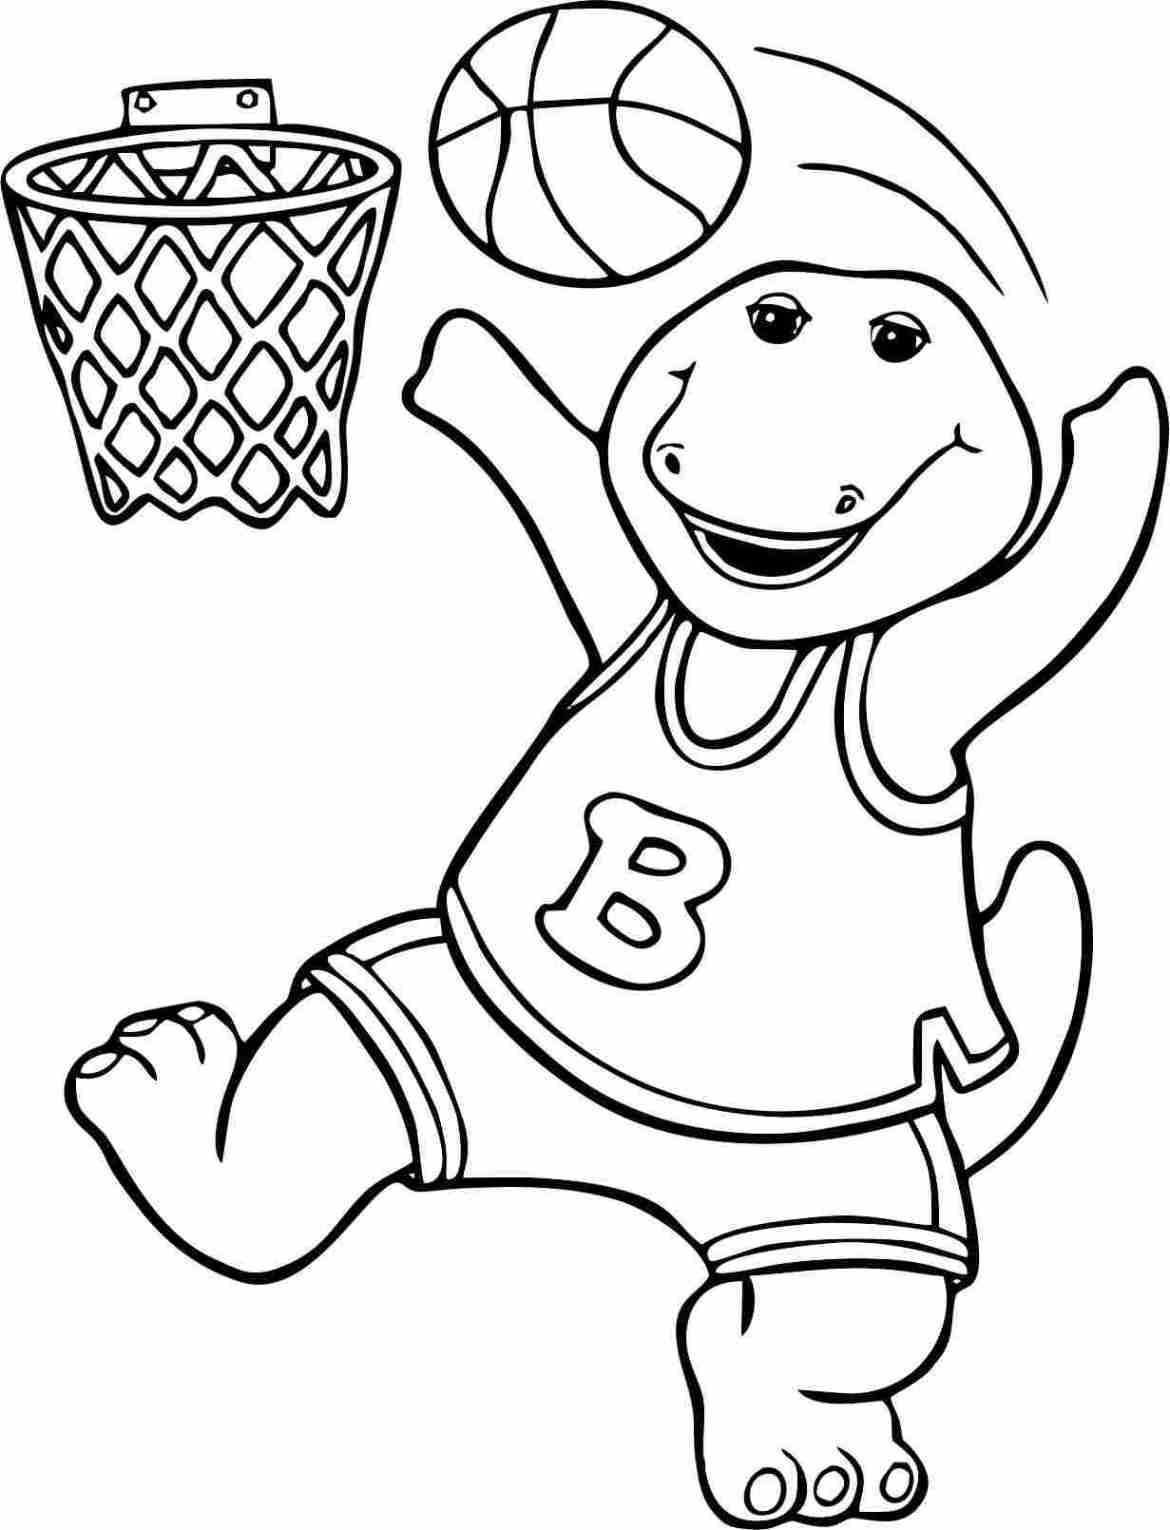 Barney Printable Coloring Pages